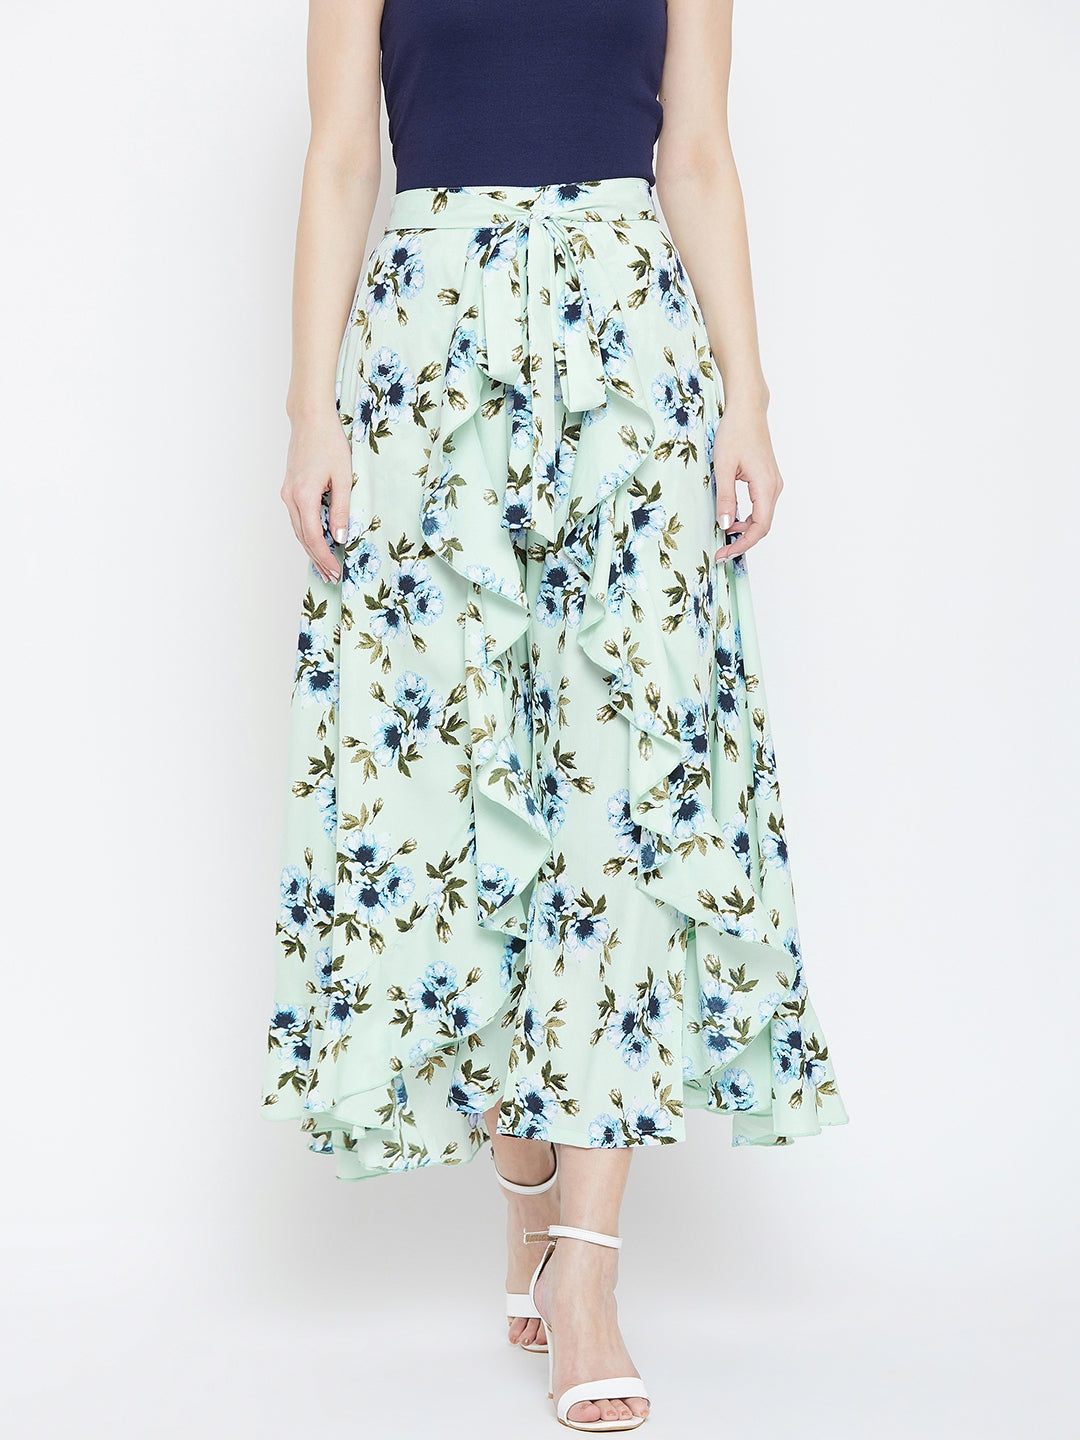 Green floral print skirt attached with pant